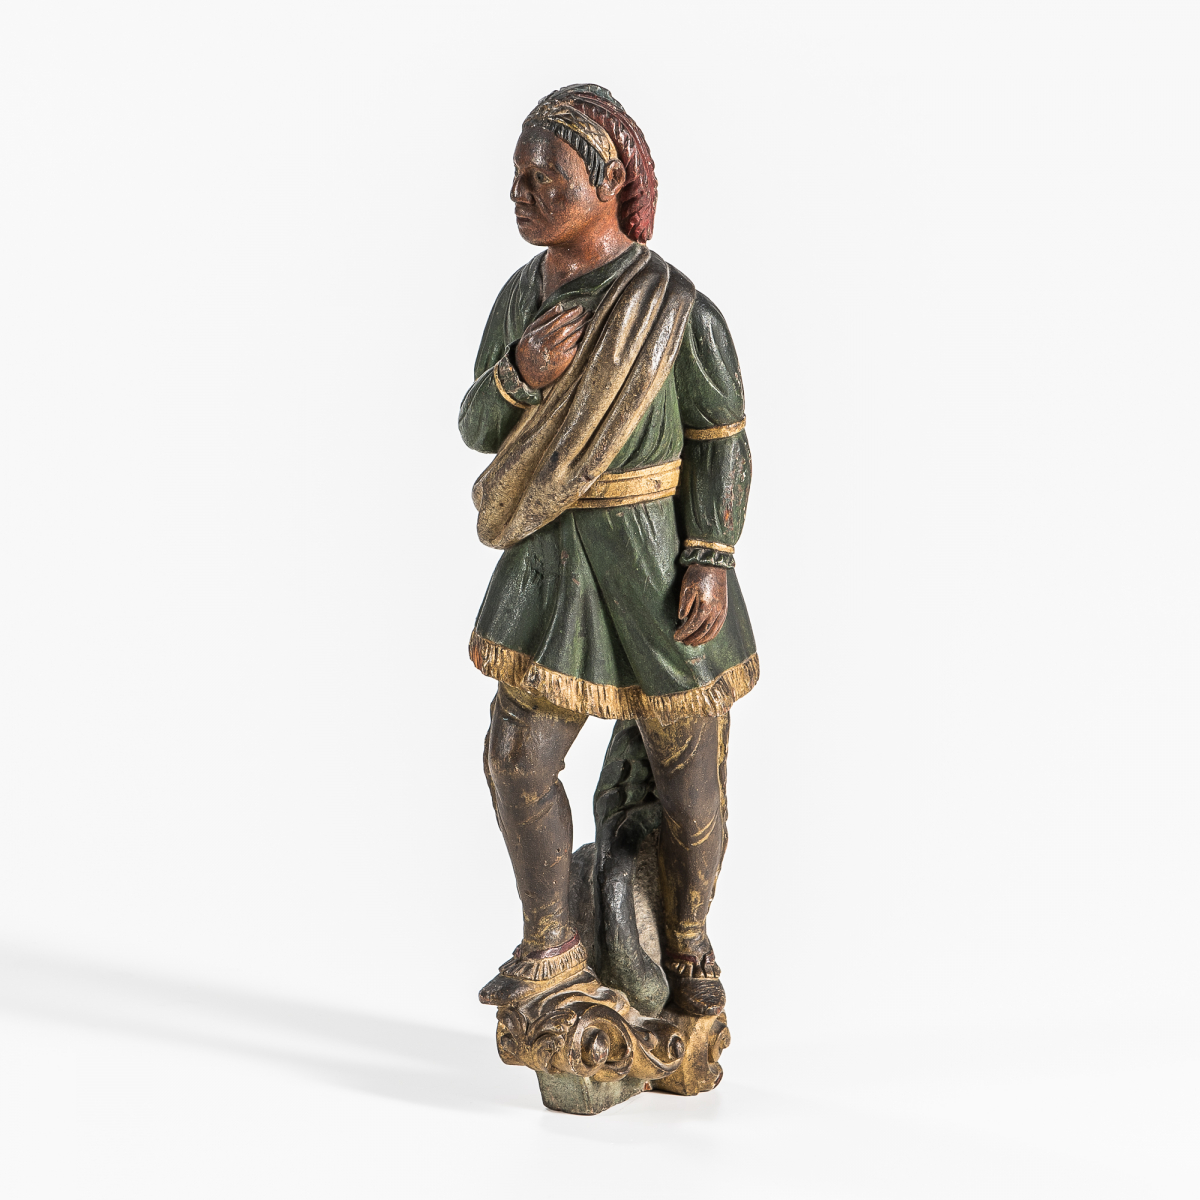 Carved and Painted Model for an Indian Chief Figurehead, America, 19th century